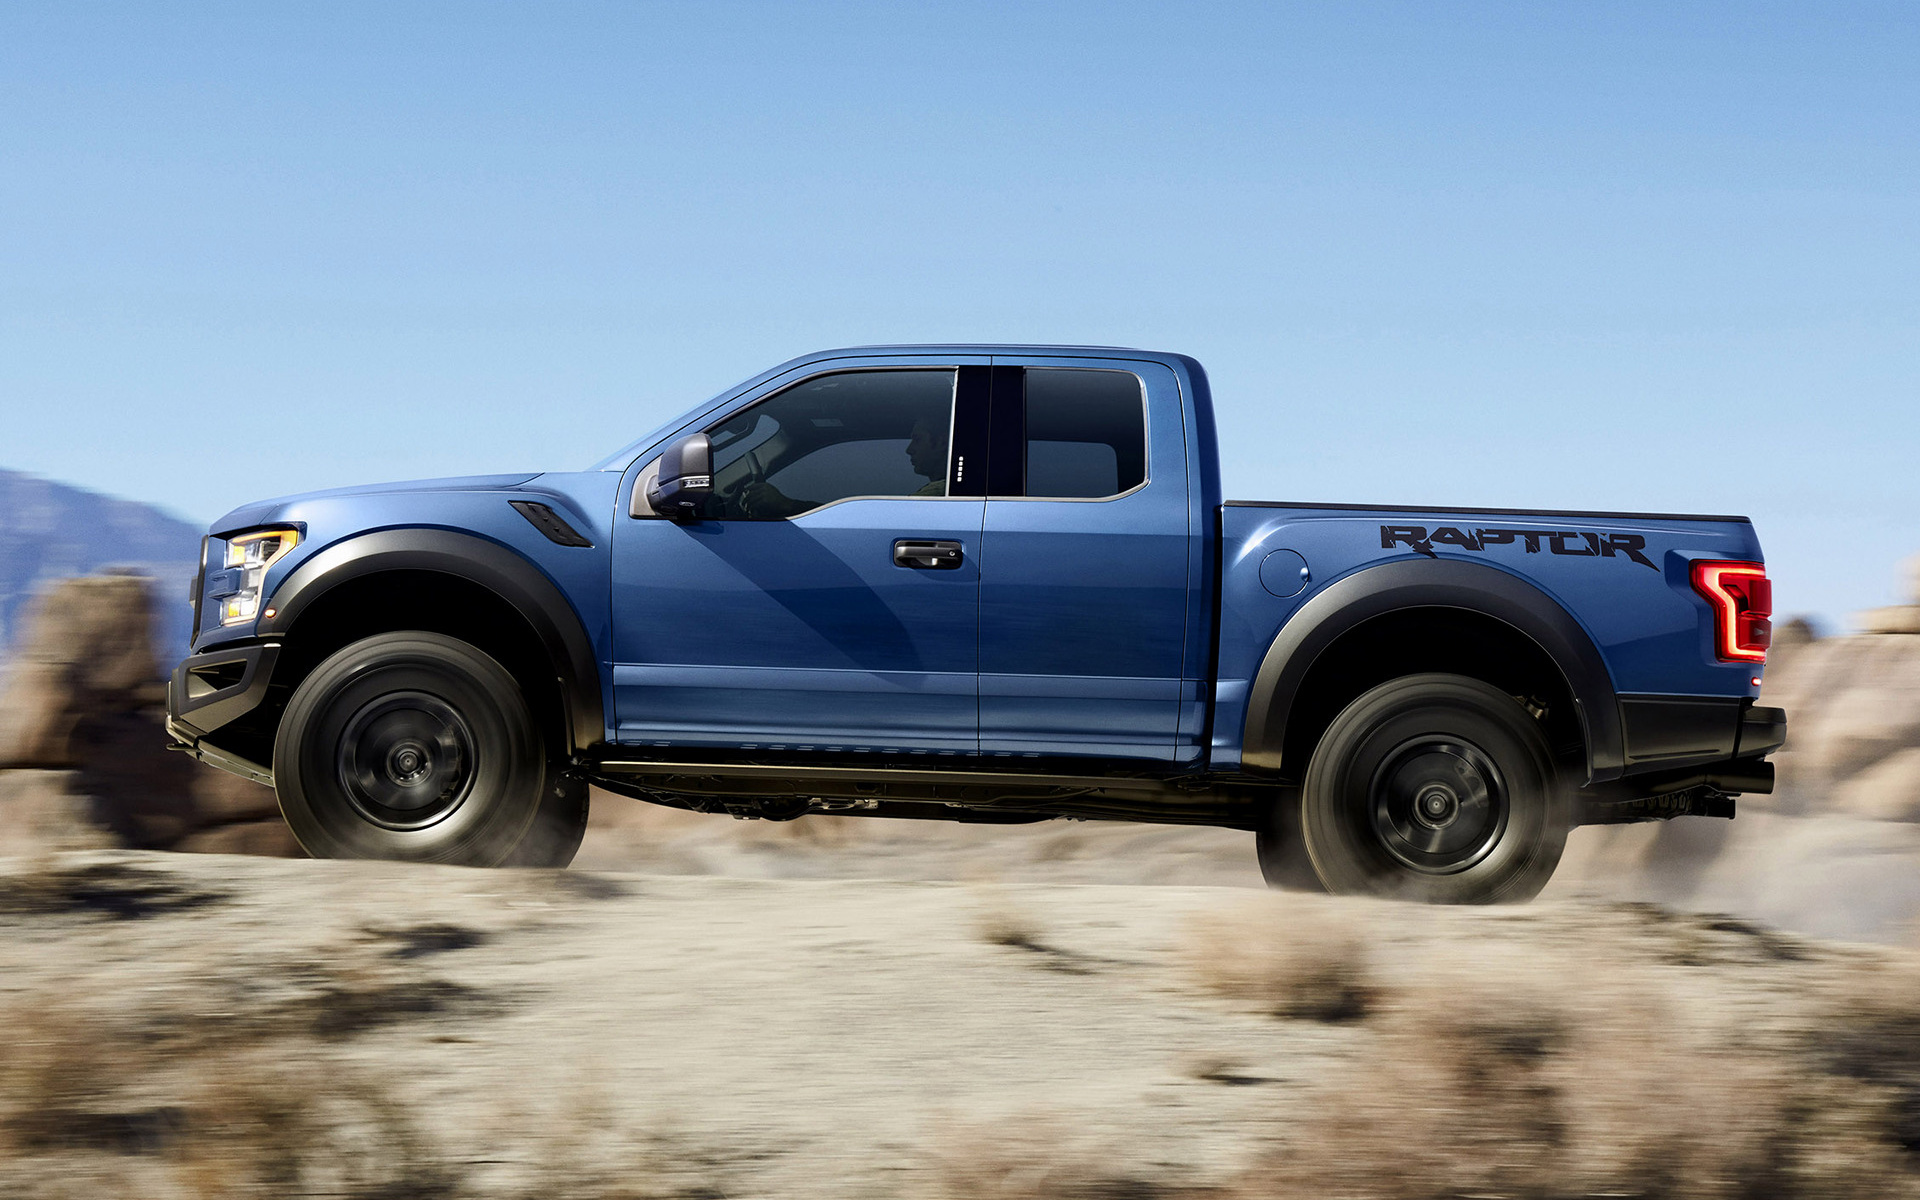 Ford F-150 Raptor SuperCab (2017) Wallpapers and HD Images - Car Pixel